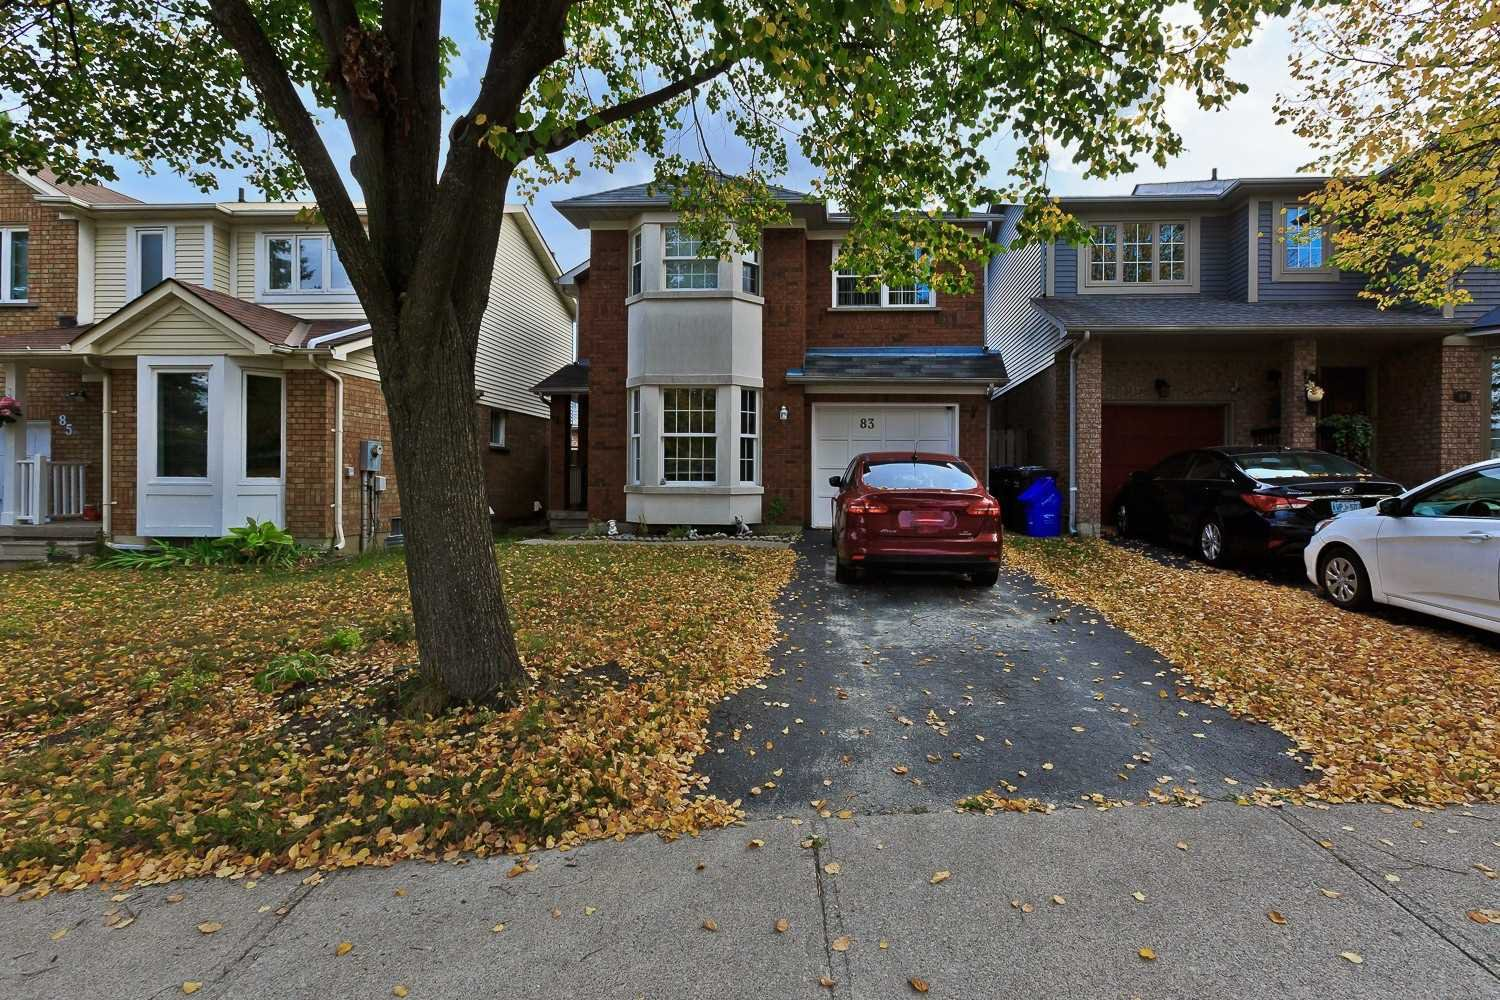 Main Photo: 83 Stoneledge Circle in Brampton: Sandringham-Wellington House (2-Storey) for sale : MLS®# W4939743